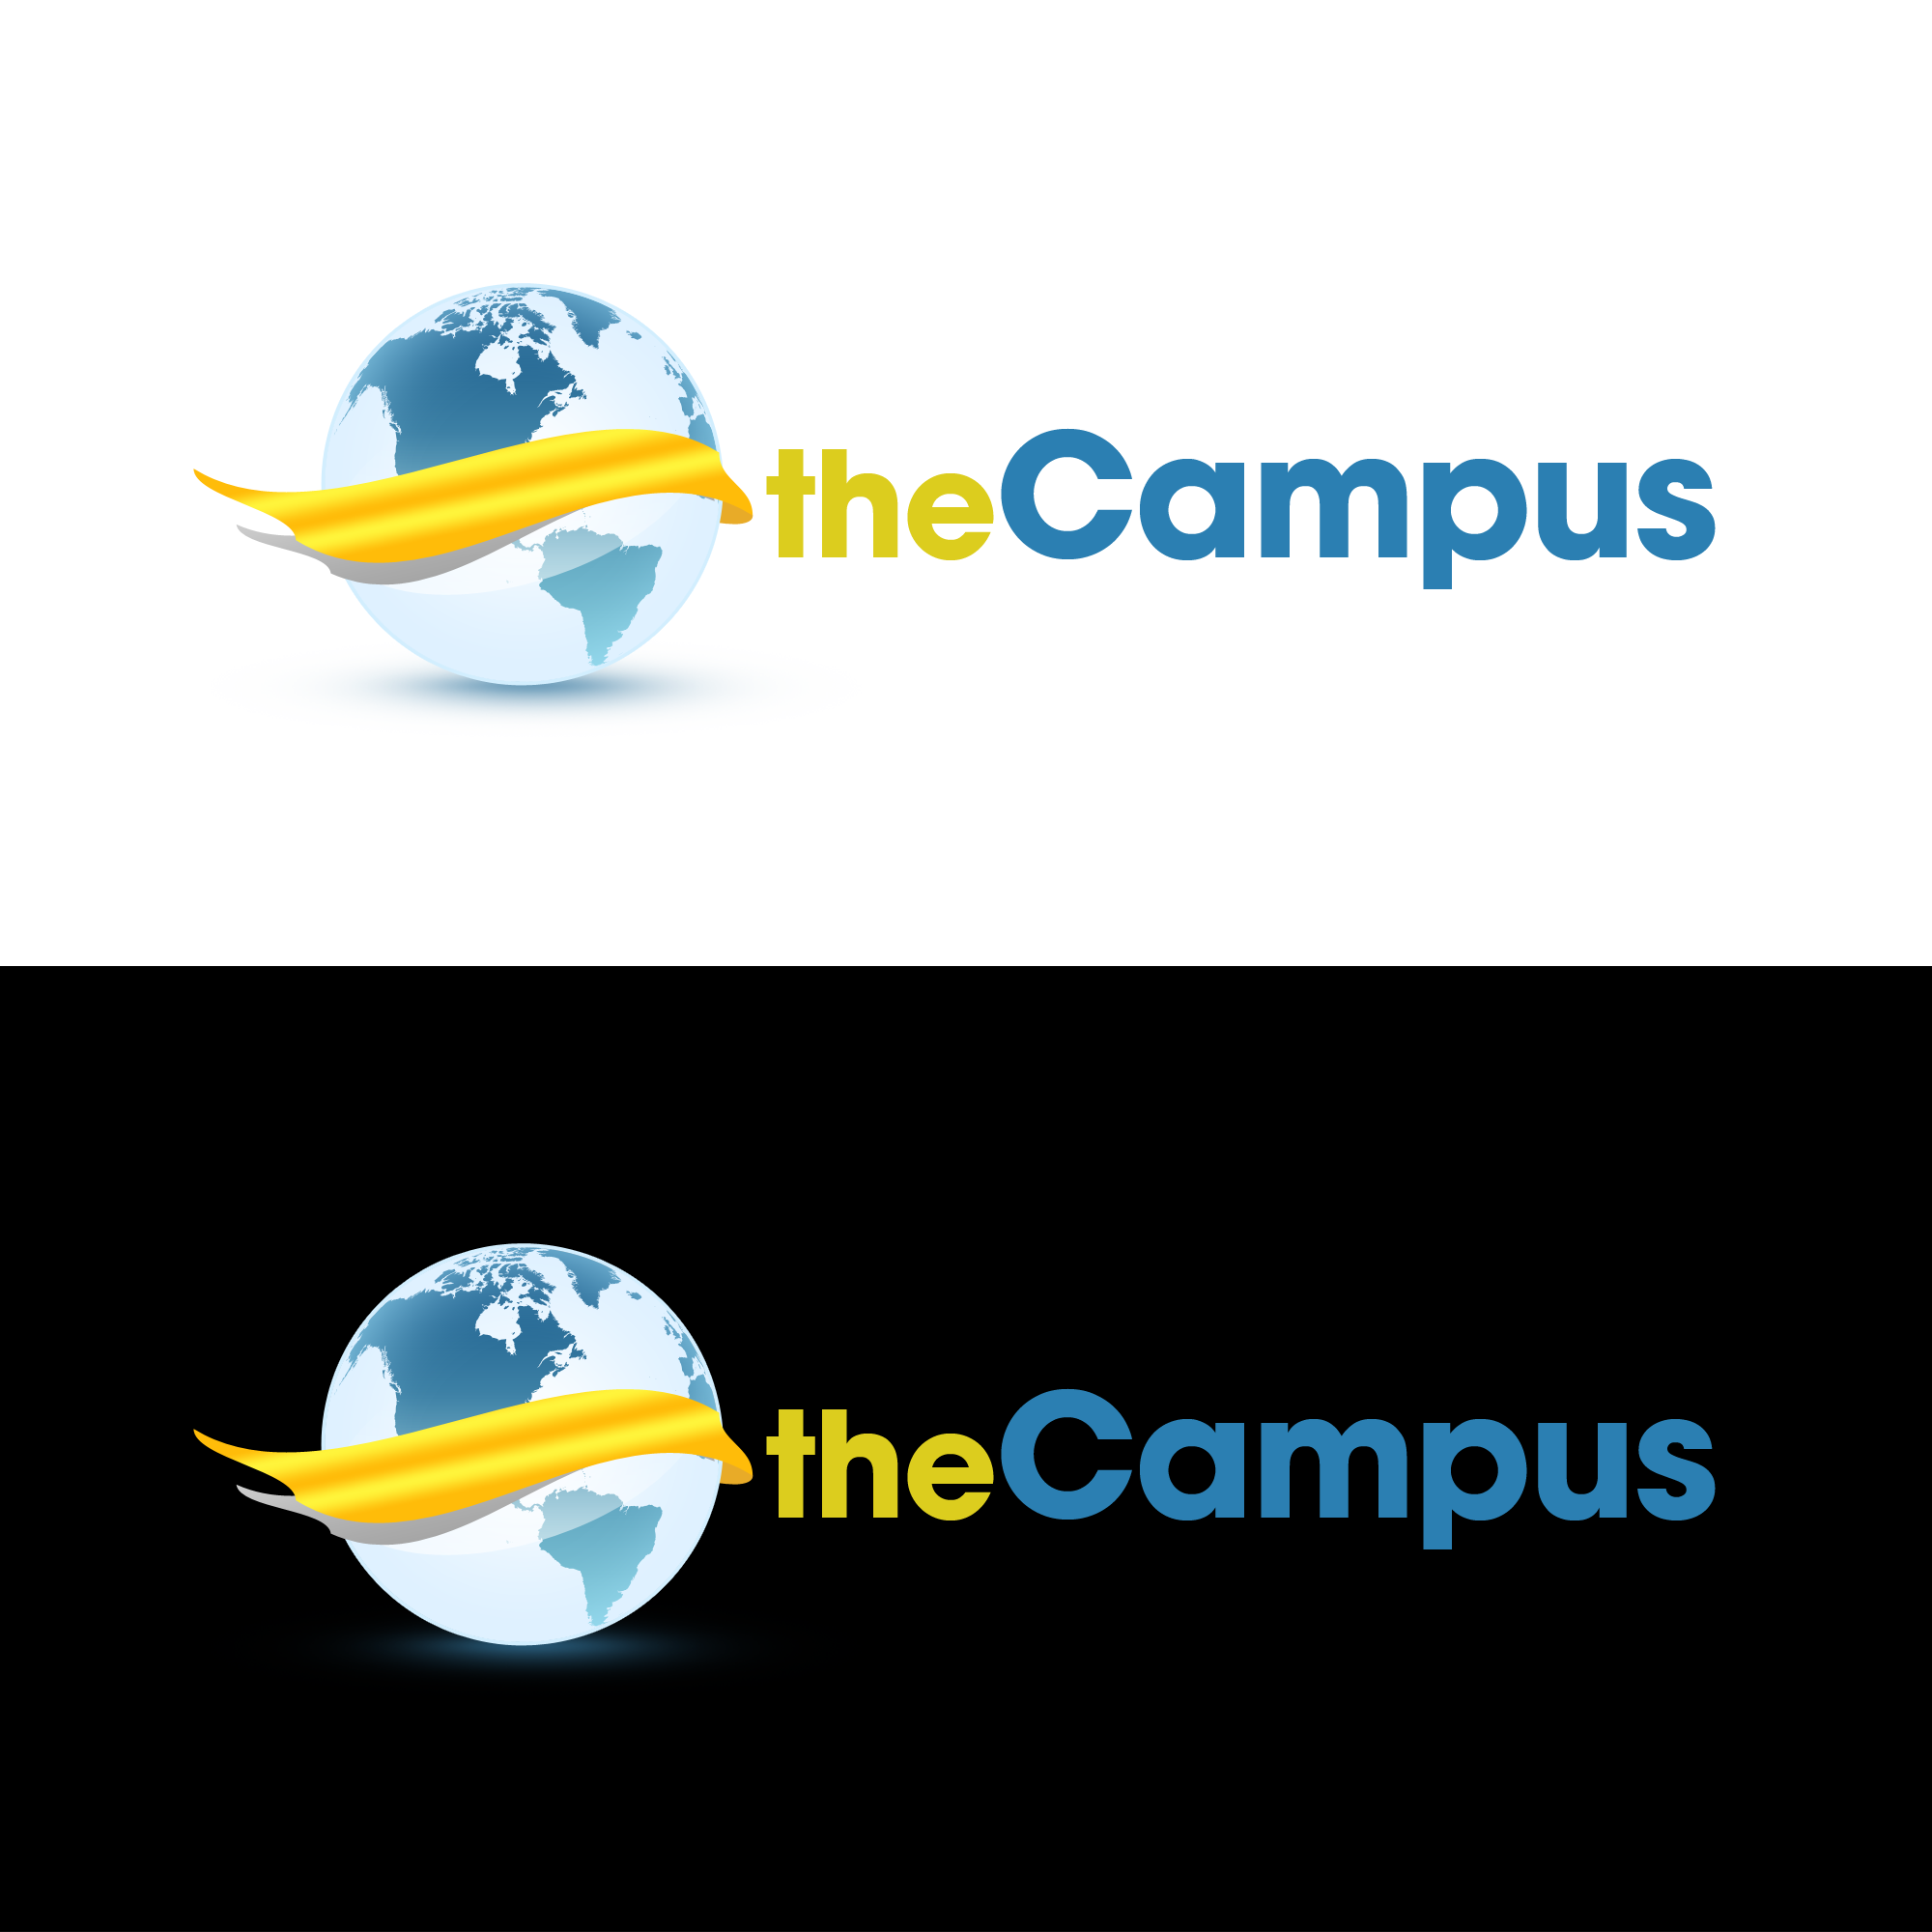 Logo Design by Kenneth Joel - Entry No. 11 in the Logo Design Contest theCampus Logo Design.